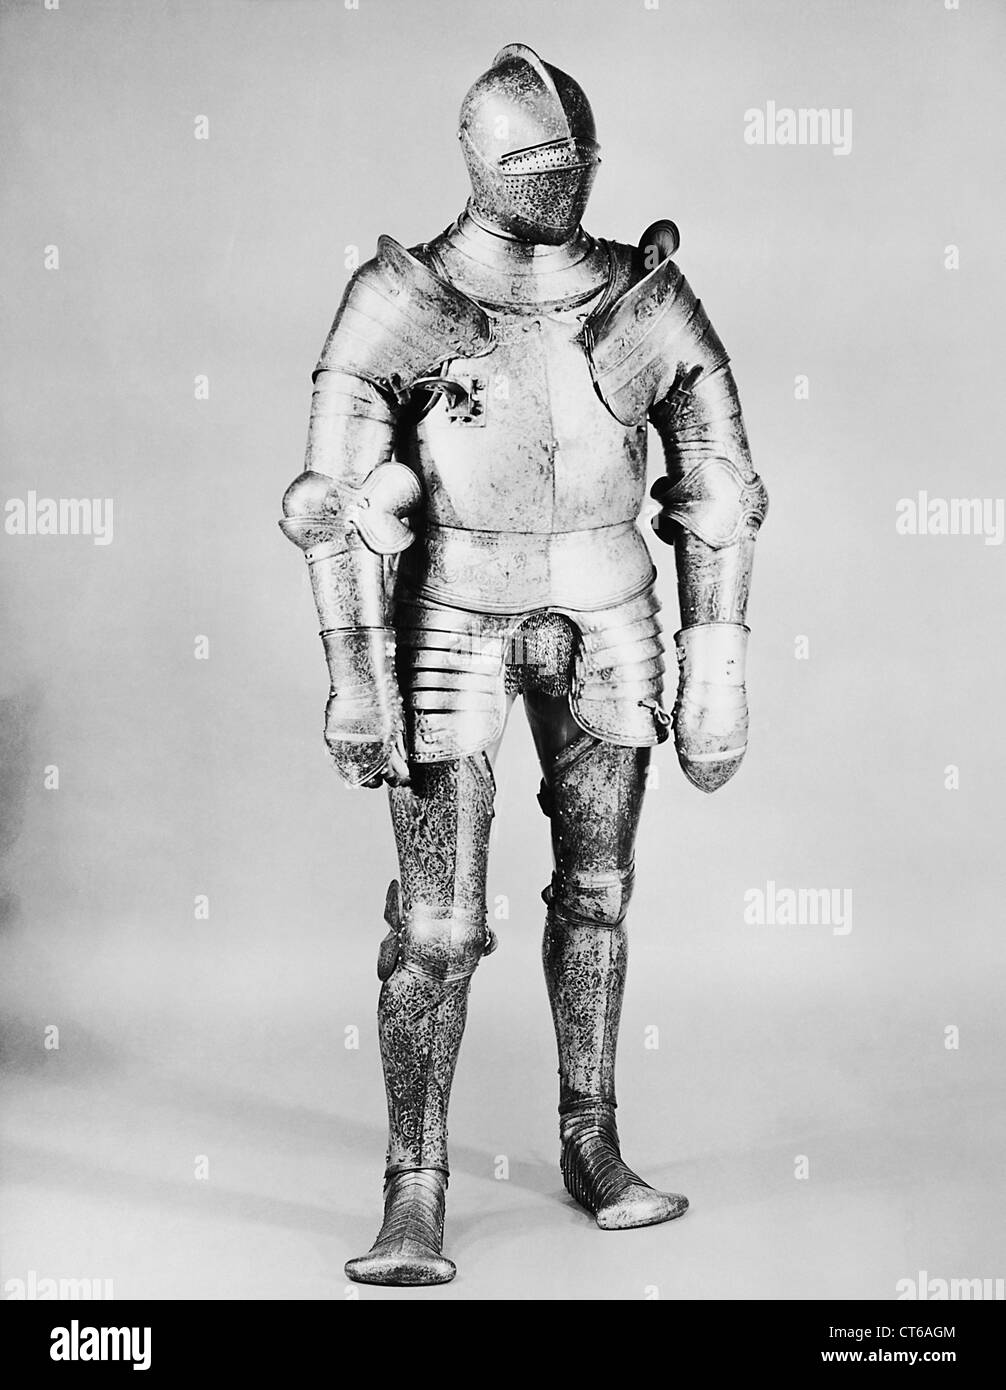 French suit of armor, circa 1527 - Stock Image